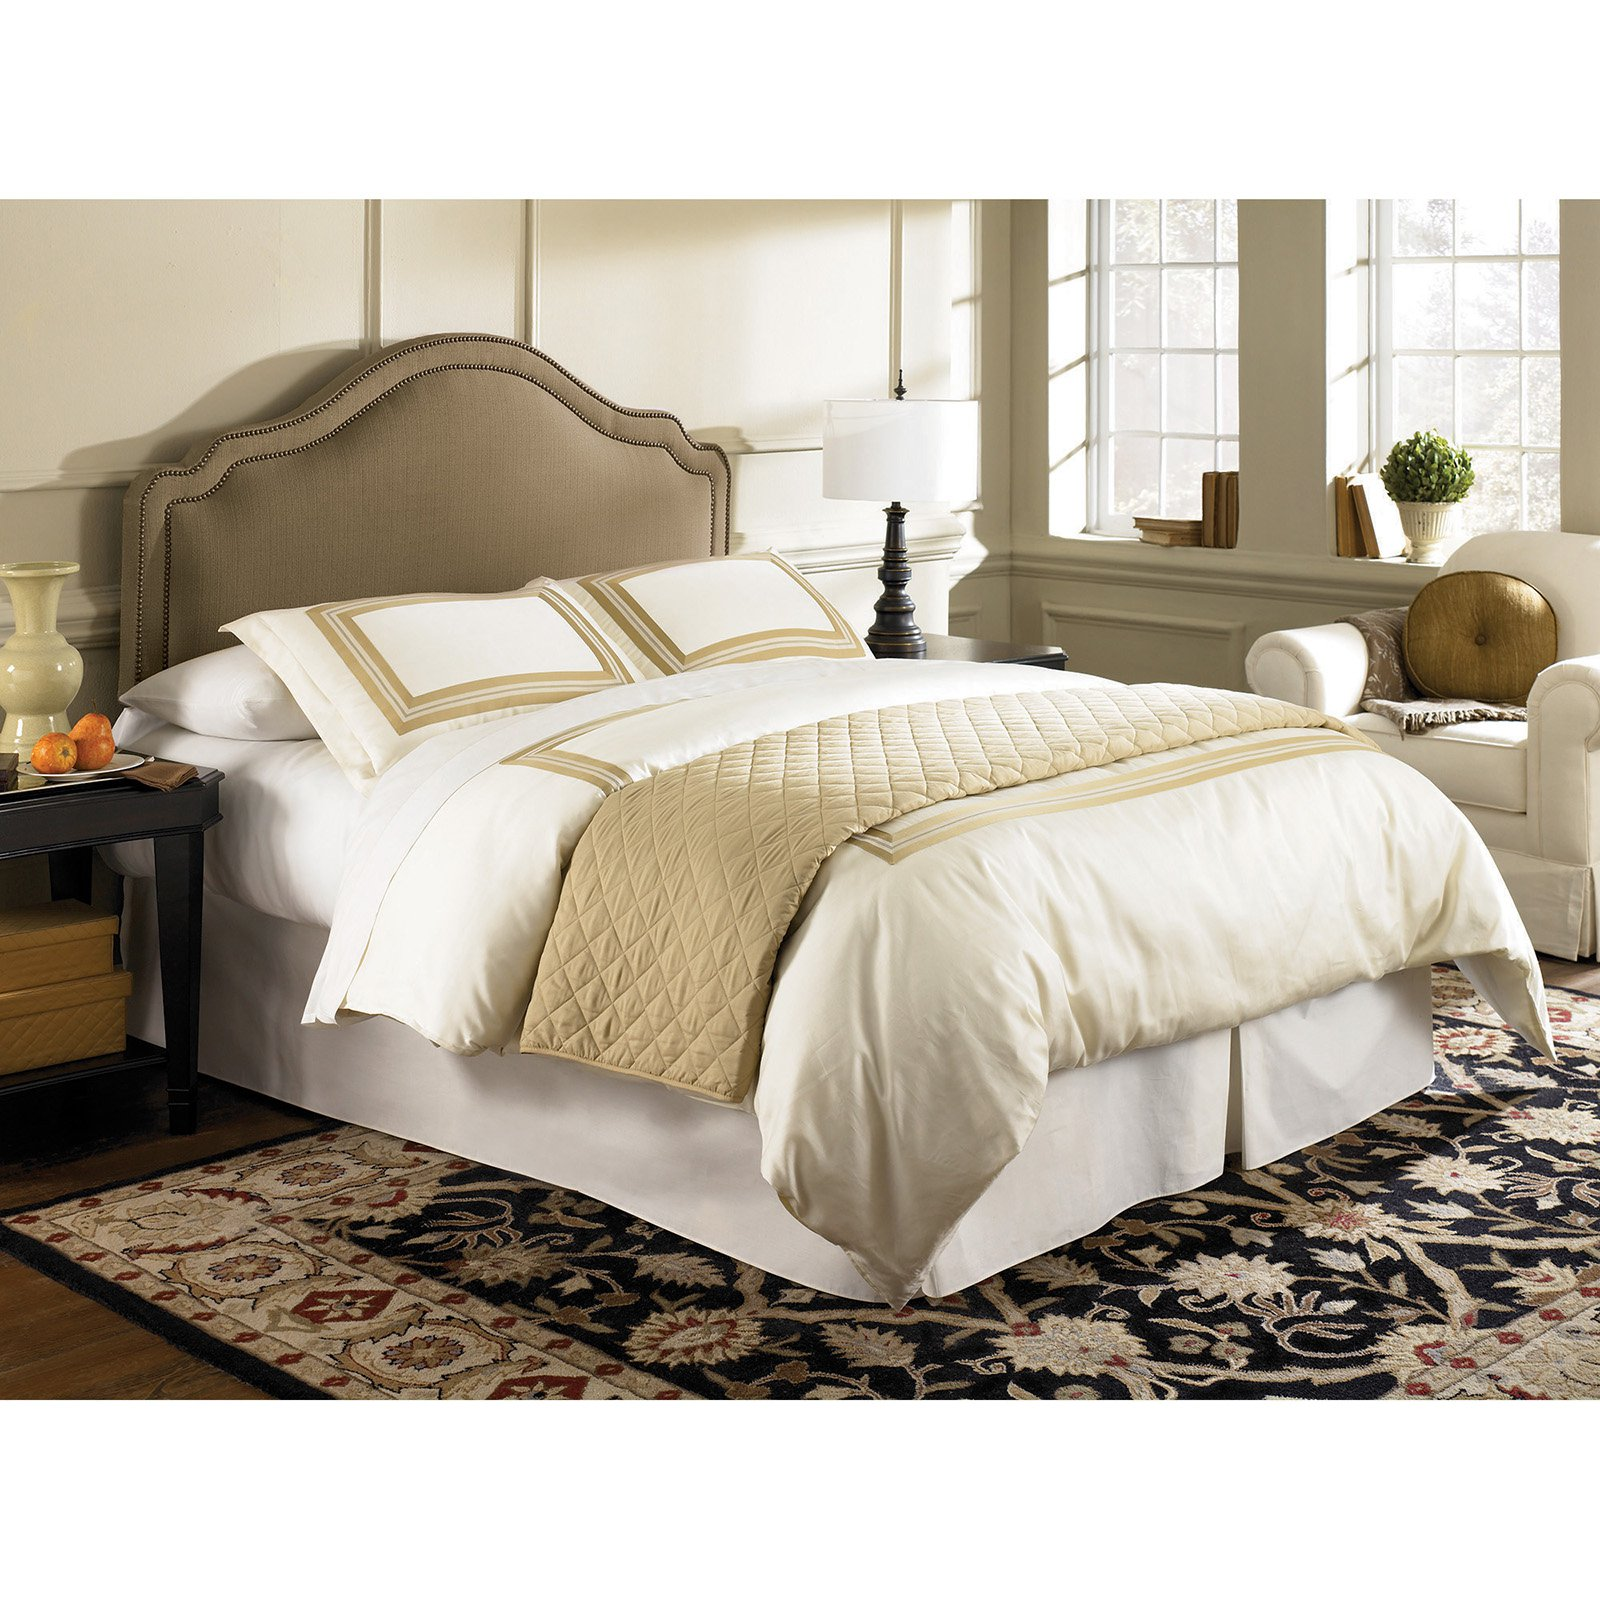 Fashion Bed Group Versailles Upholstered Headboard